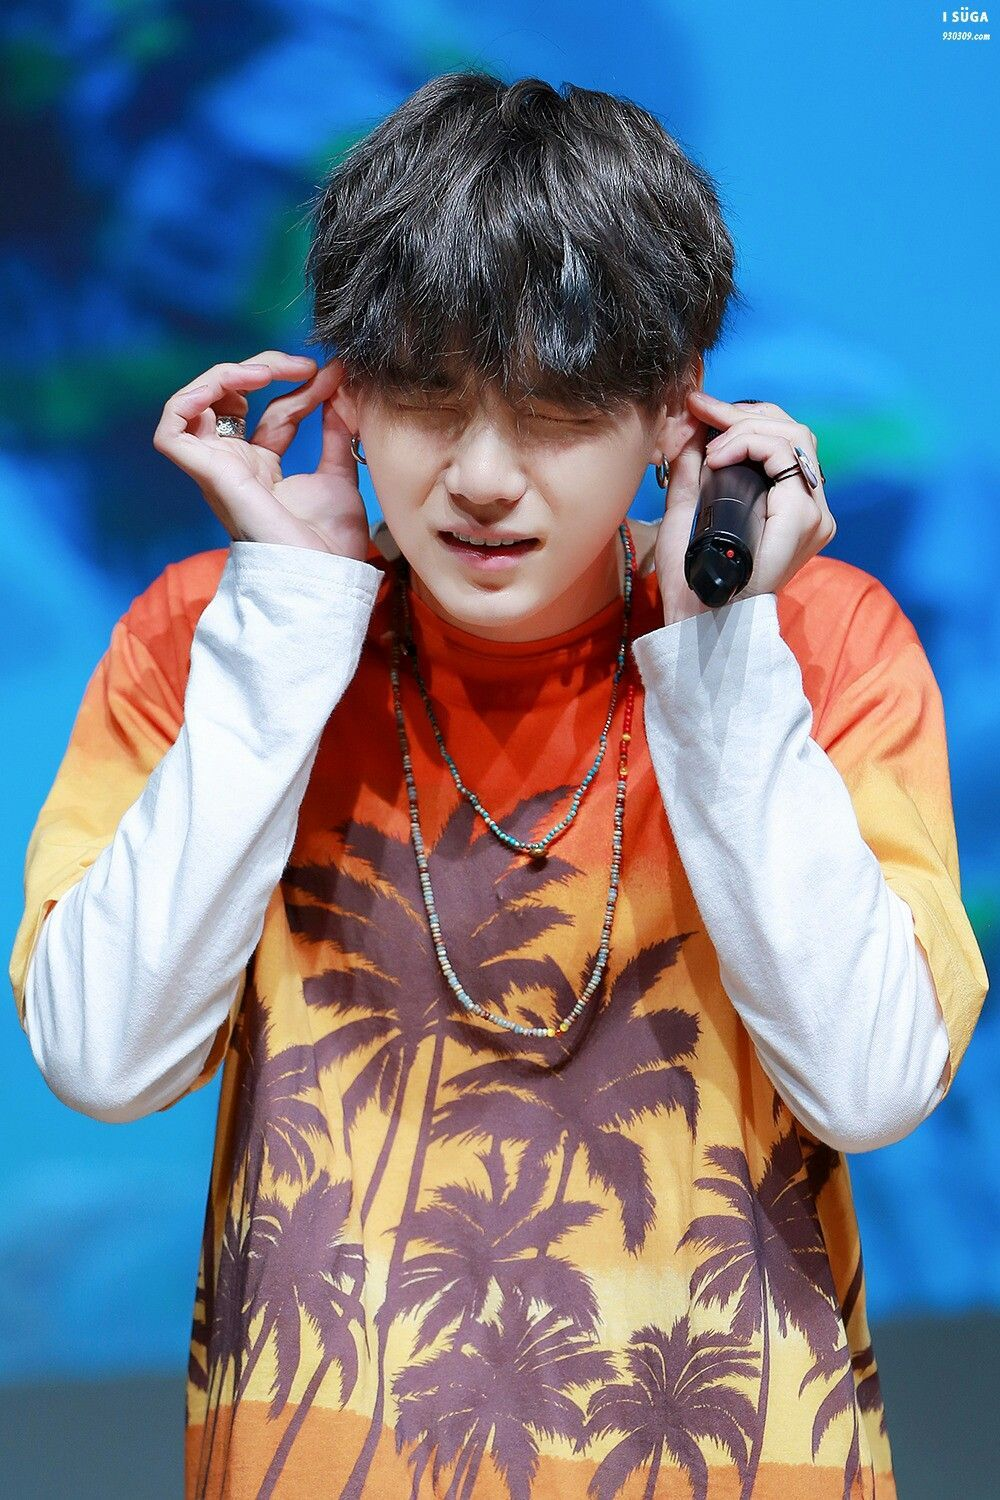 bts-suga-net-worth-2021-updated-did-the-shoulder-issue-lower-his-earnings-and-total-assets